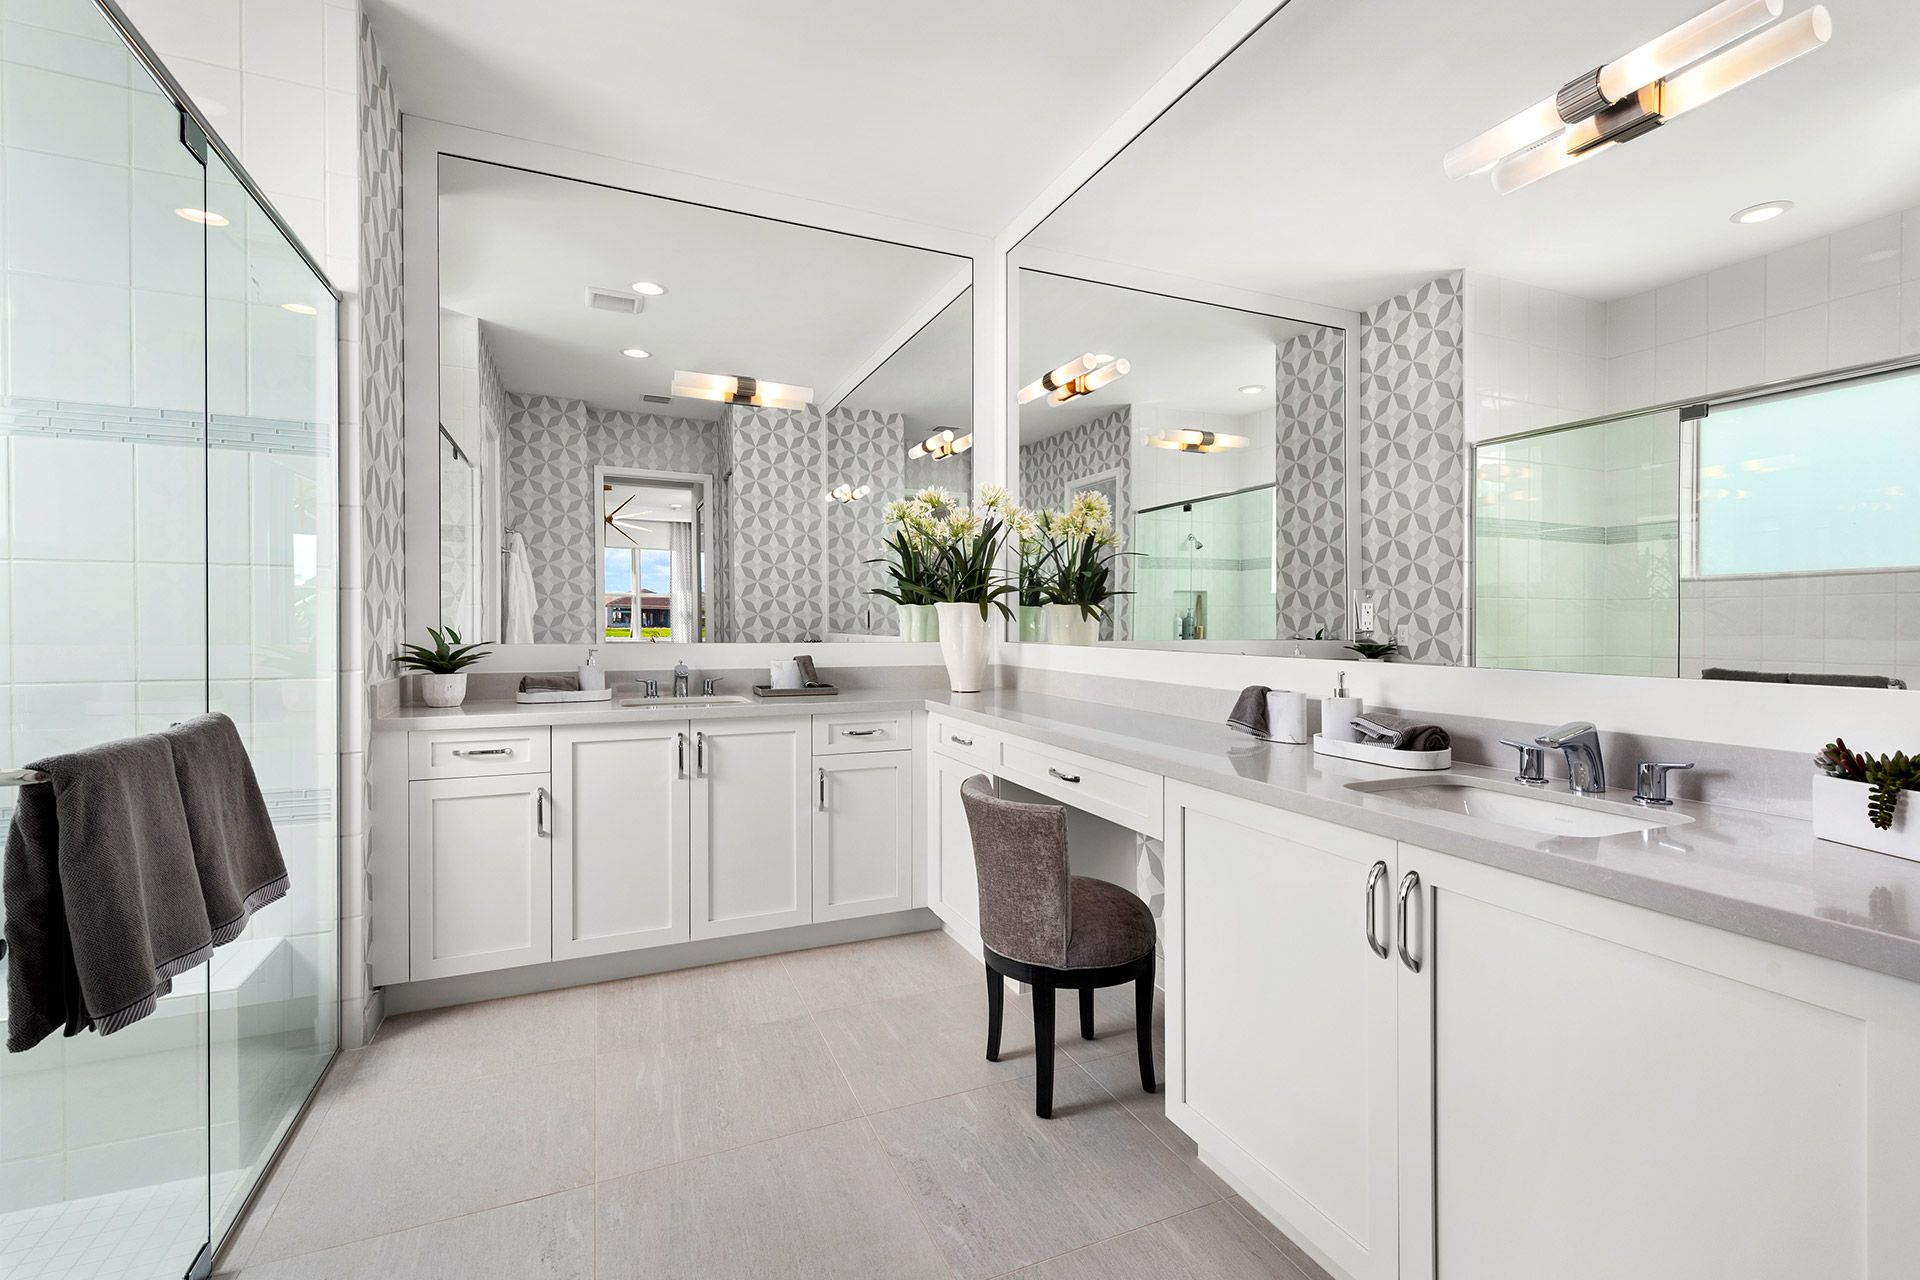 Bathroom featured in the Isabella By GL Homes in Tampa-St. Petersburg, FL